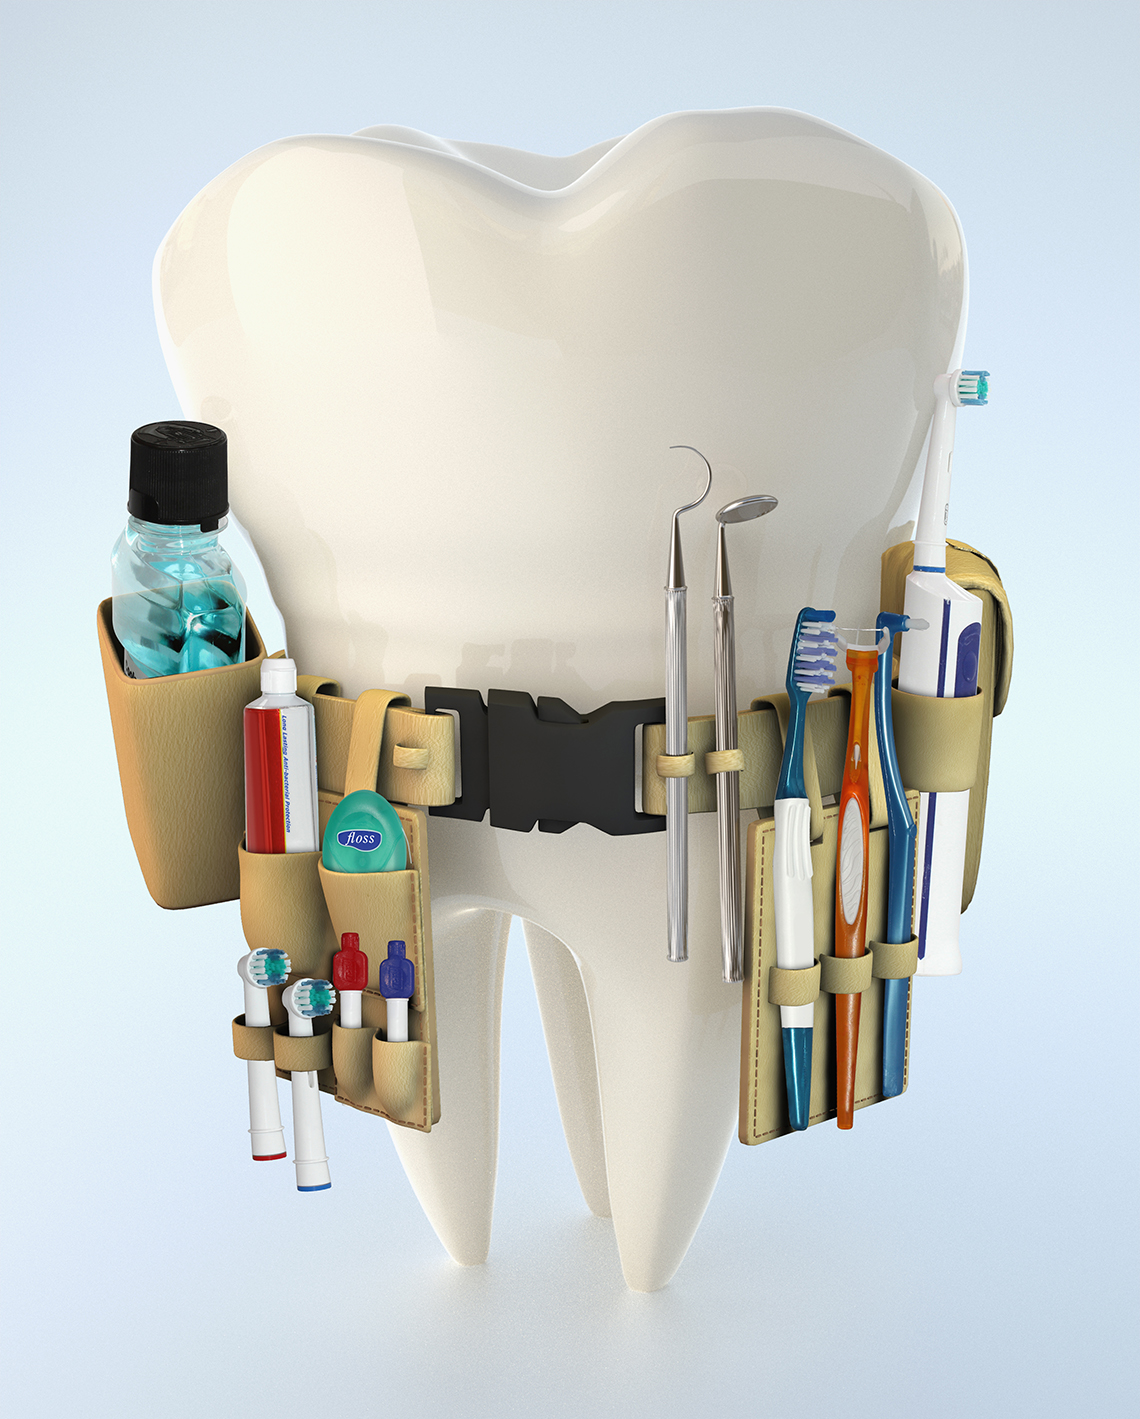 Tips to Find the Best Toothbrush, Mouthwash, Floss